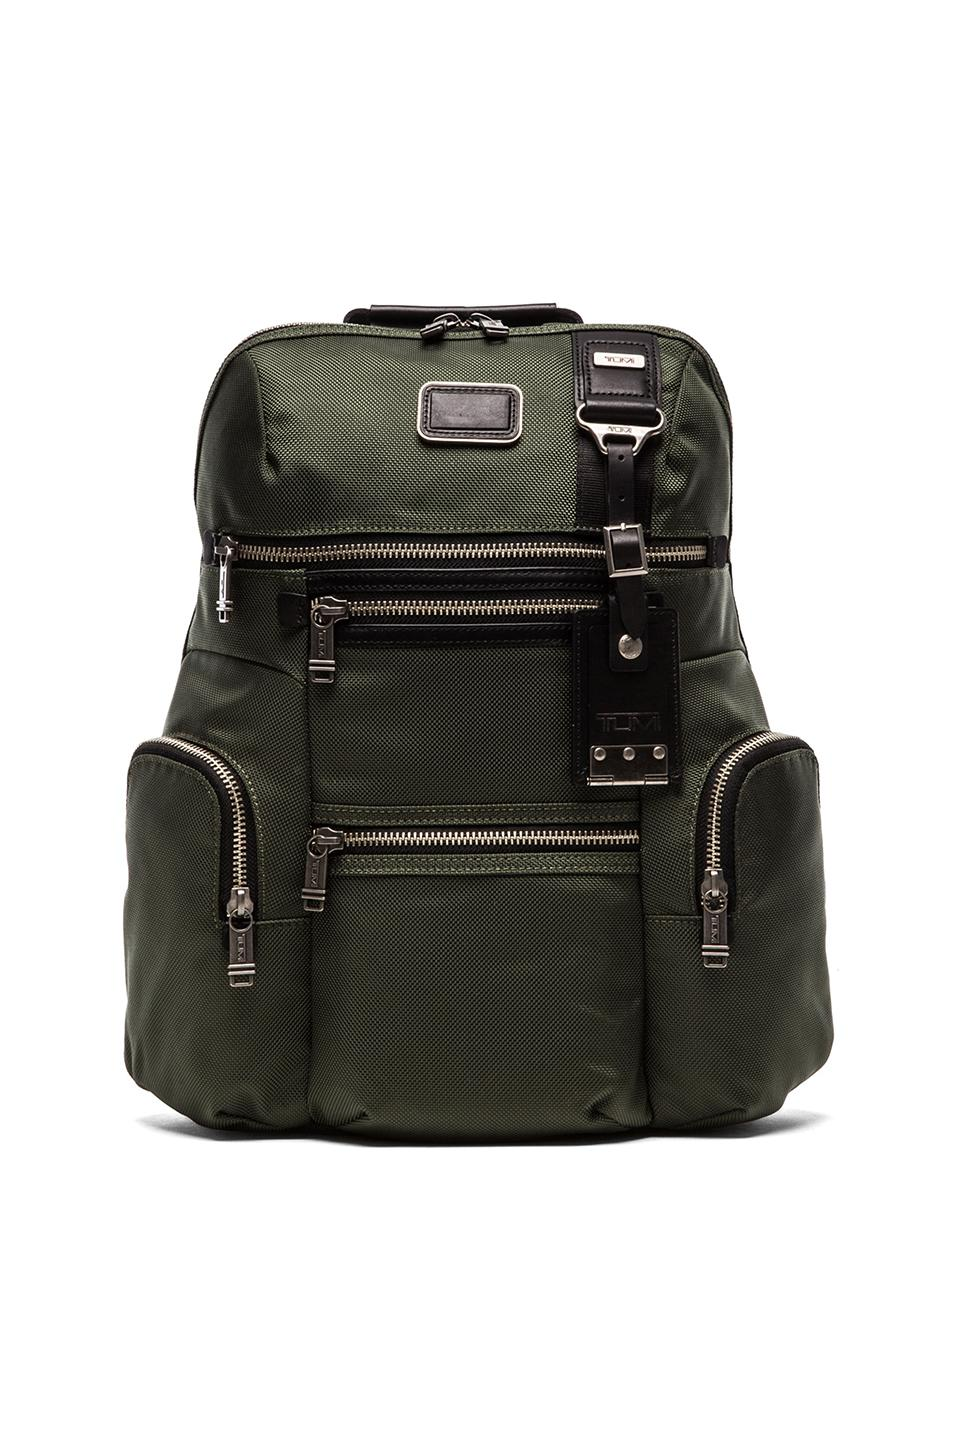 Tumi Alpha Bravo Ballistic Nylon Knox Backpack in Spruce